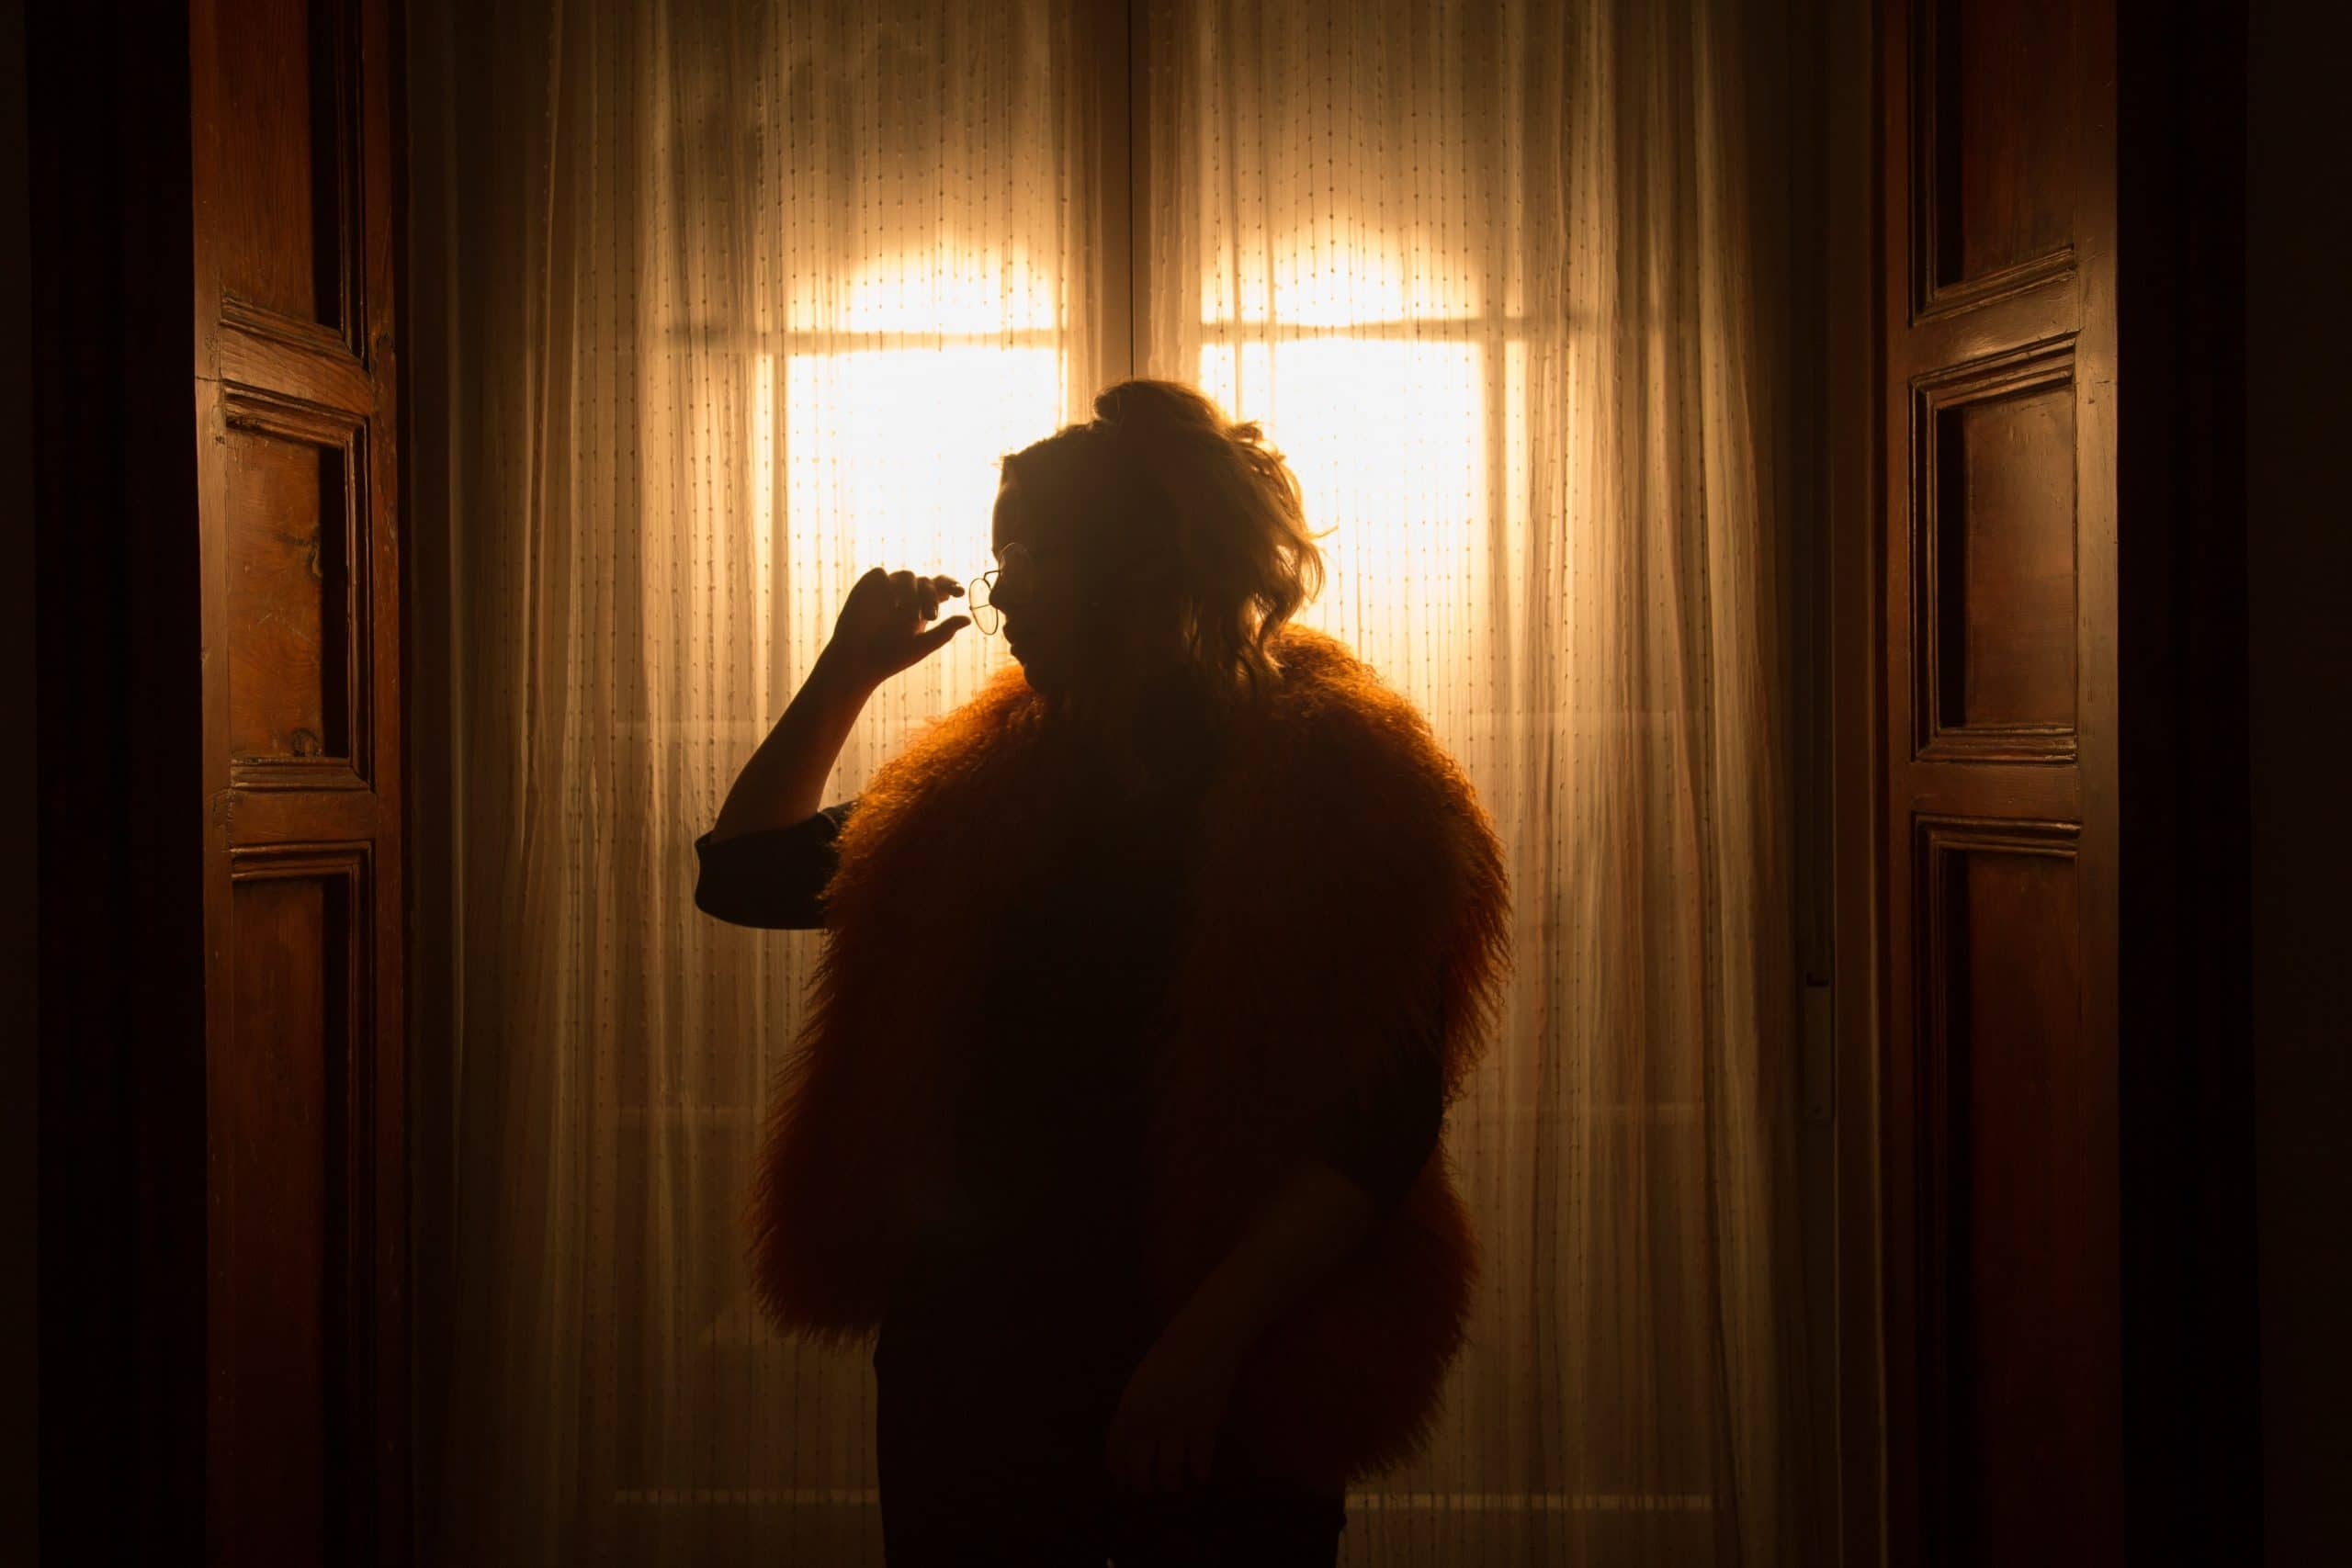 Girl in front of window - What is Backlighting?